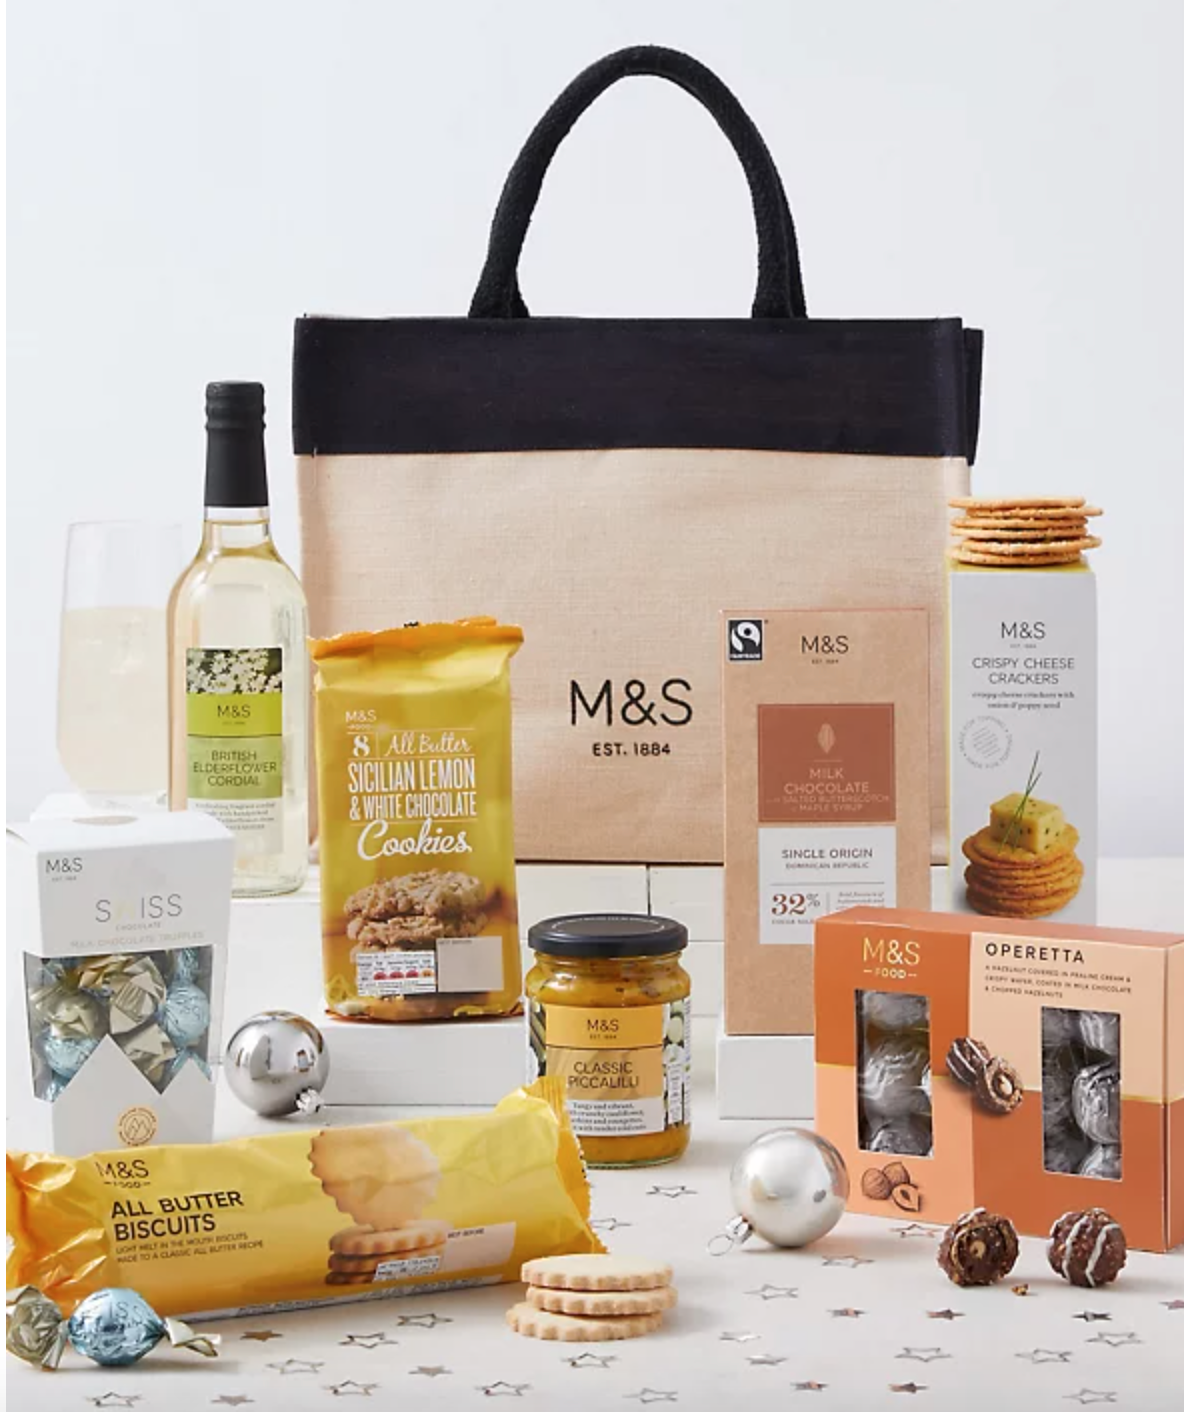 Above: There are M&S hampers up for grabs for three lucky participants.